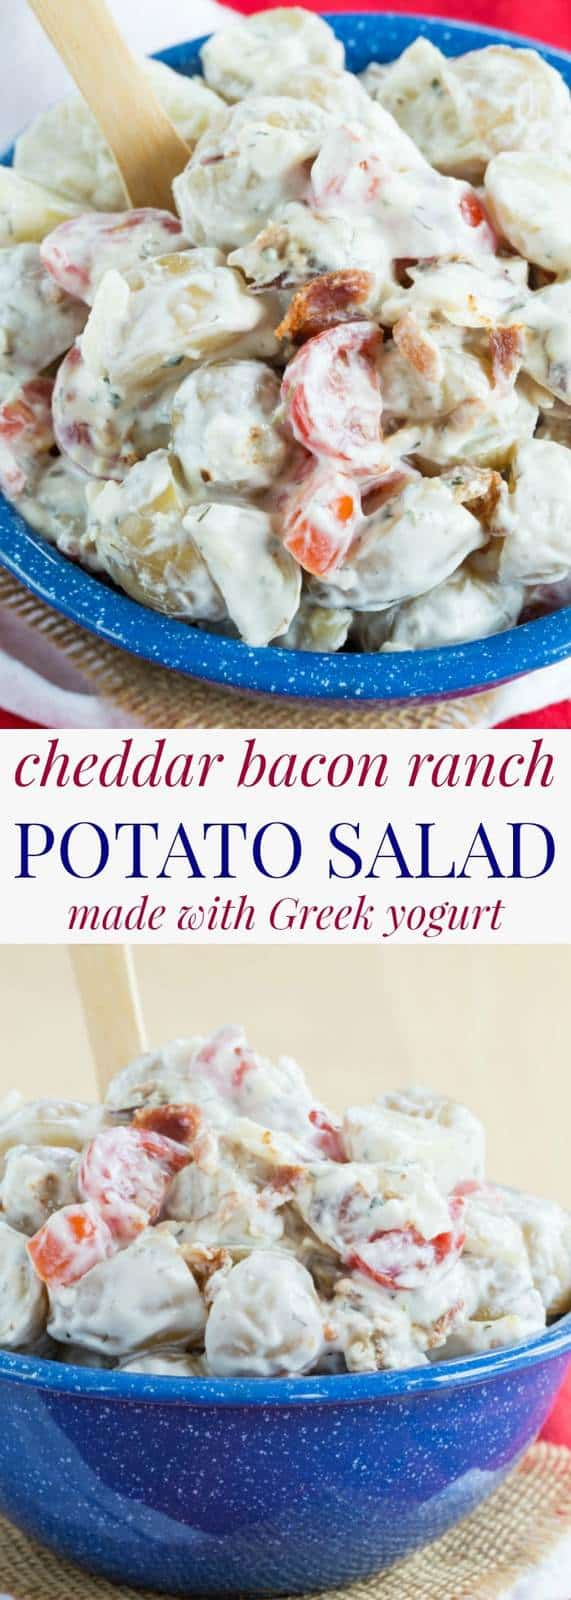 Cheddar Bacon Ranch Potato Salad - a lightened up version of a staple summer side dish made with Greek yogurt and all of your favorite flavors, but no seasoning packets! | cupcakesandkalechips.com | gluten free